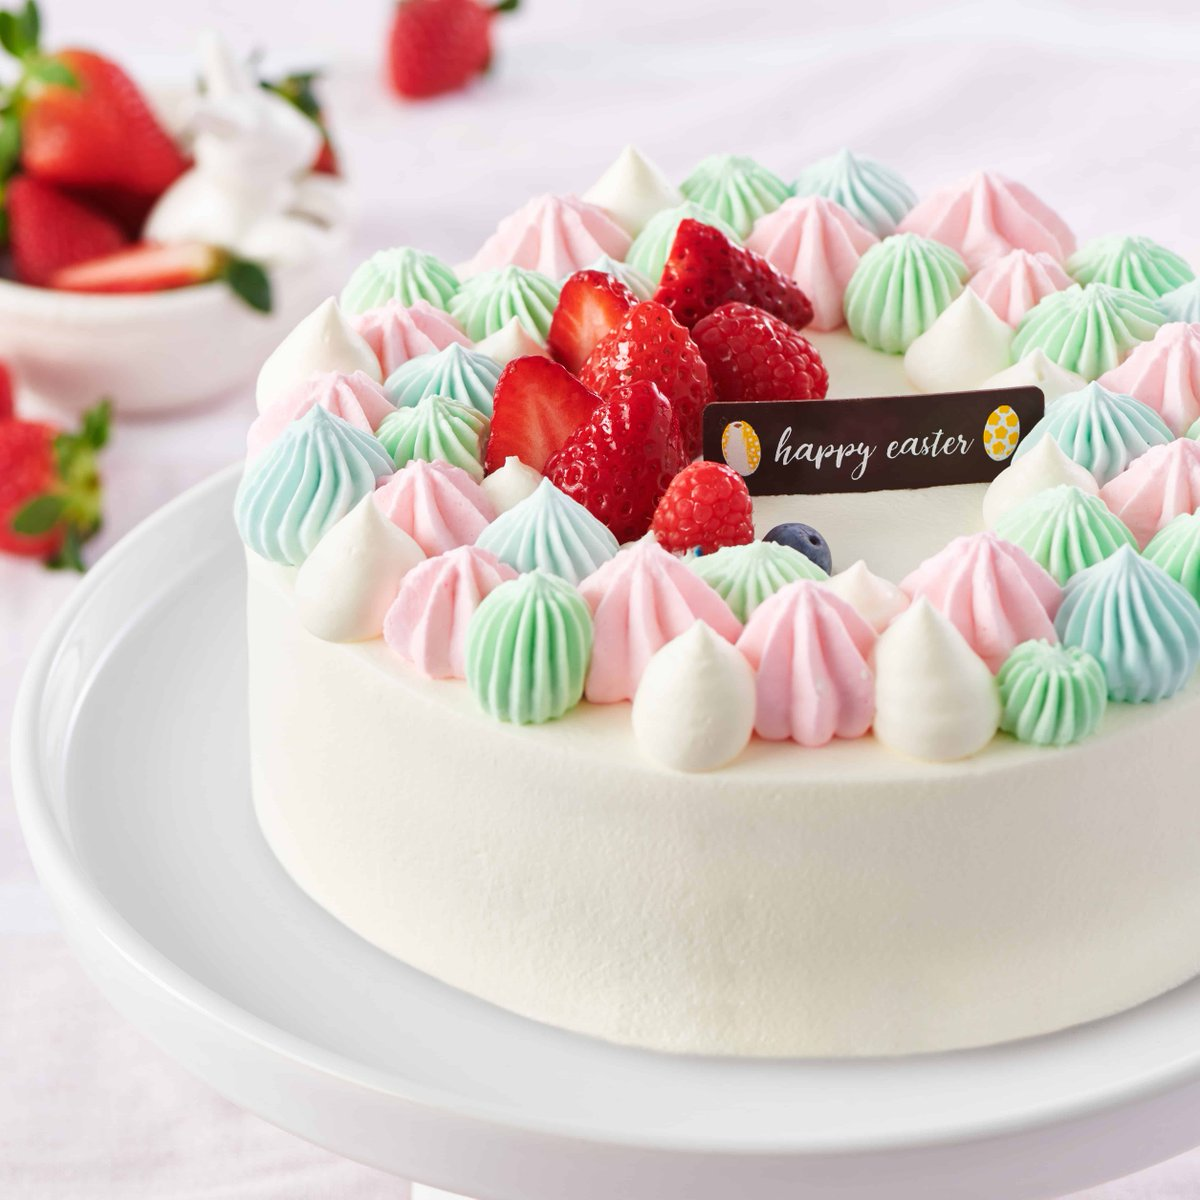 Sweet Strawberry Easter Cake! Strawberries, Soft Cream, and three layers of Vanilla Cake... The perfect Easter treat! #EasterCake #Cake #parisbaguette #bakery #dessert Available only at select locations.